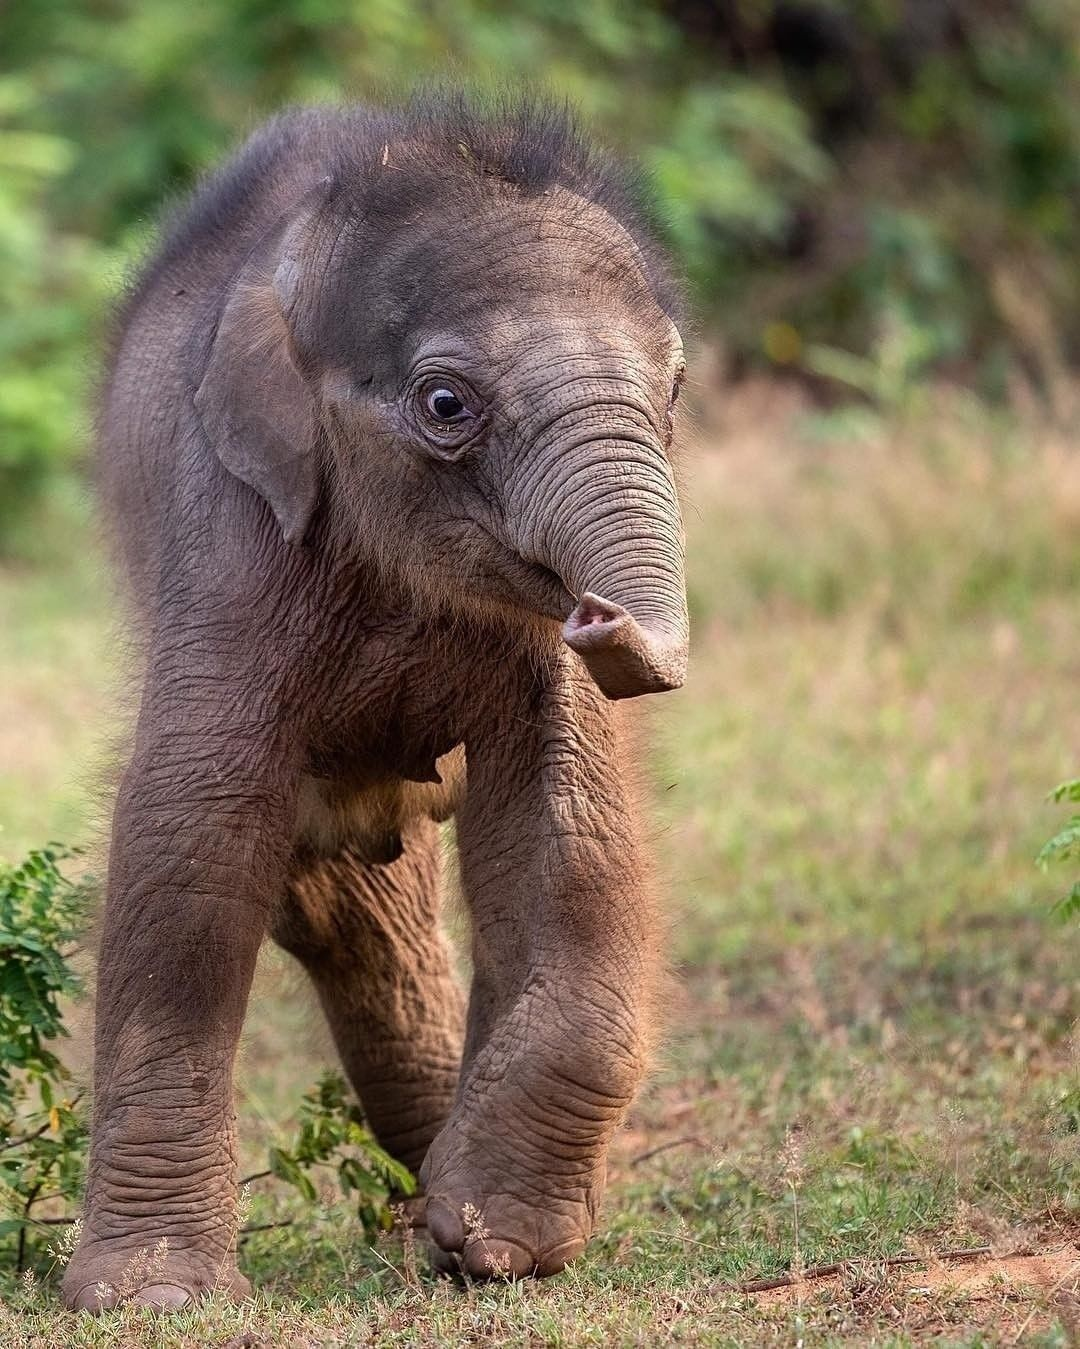 Elephant Elephants Elephantlove Saveelephant Iloveelephant Elephantlover Strunk Wilfanimal Wilflife Elephants Photos Elephant Save The Elephants